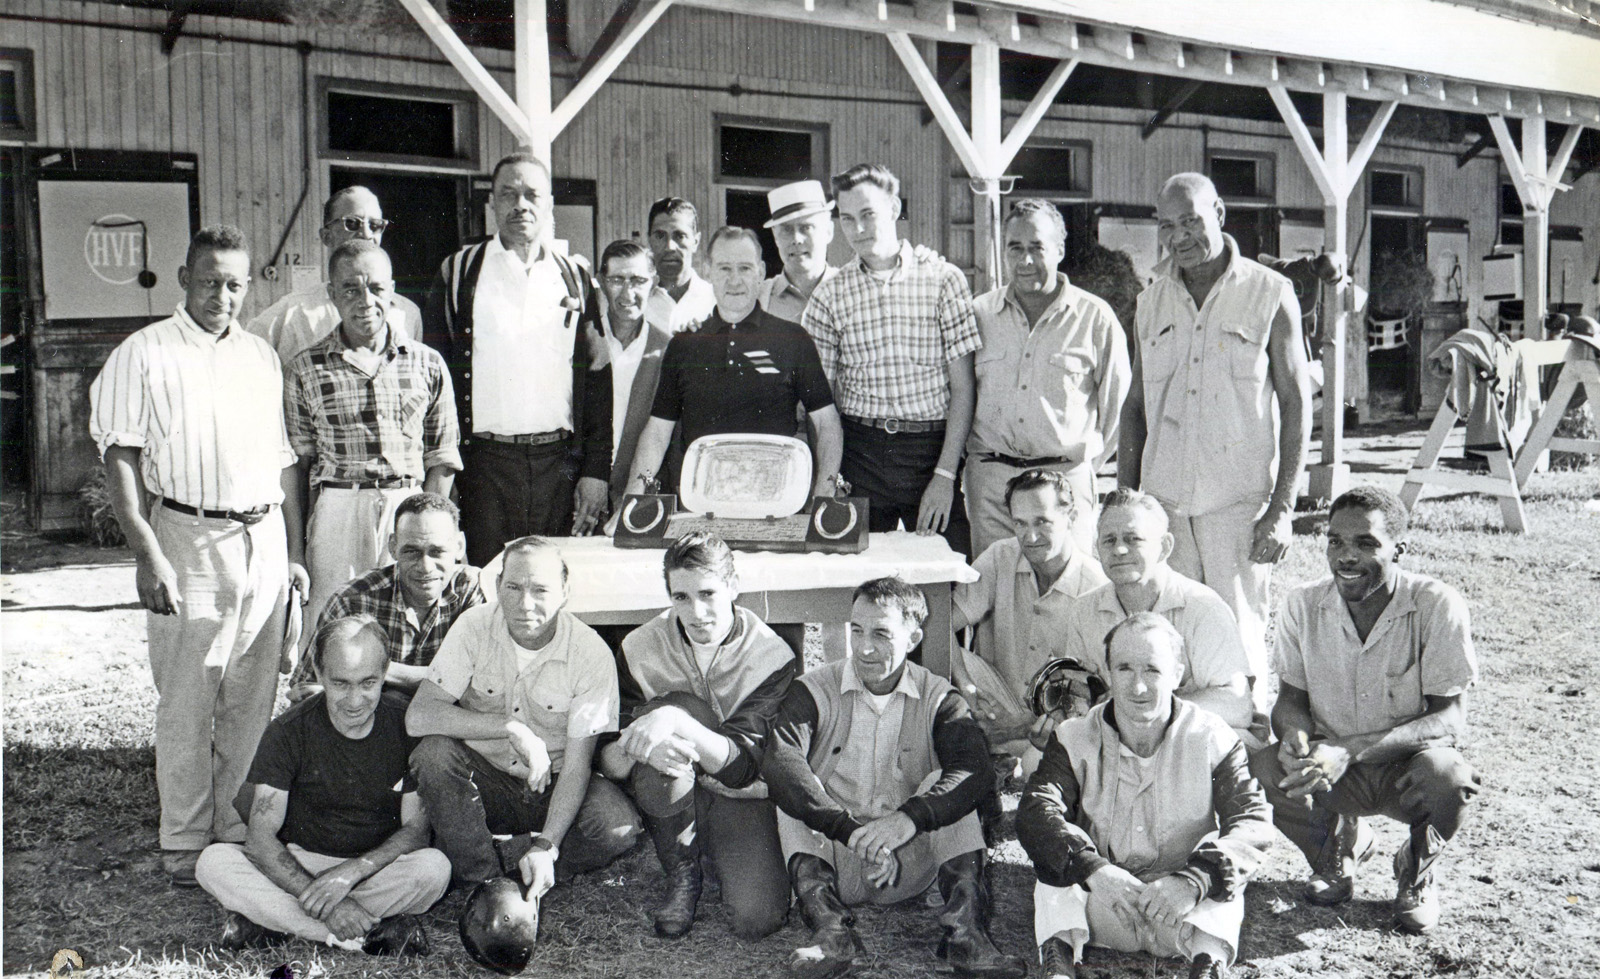 Harbor View Farm group photo at a surprise farewell trophy presentation for Burley Parke on the occasion of his retirement (Parke in center with trophy) (NYRA/Jim Sargent /Museum Collection)